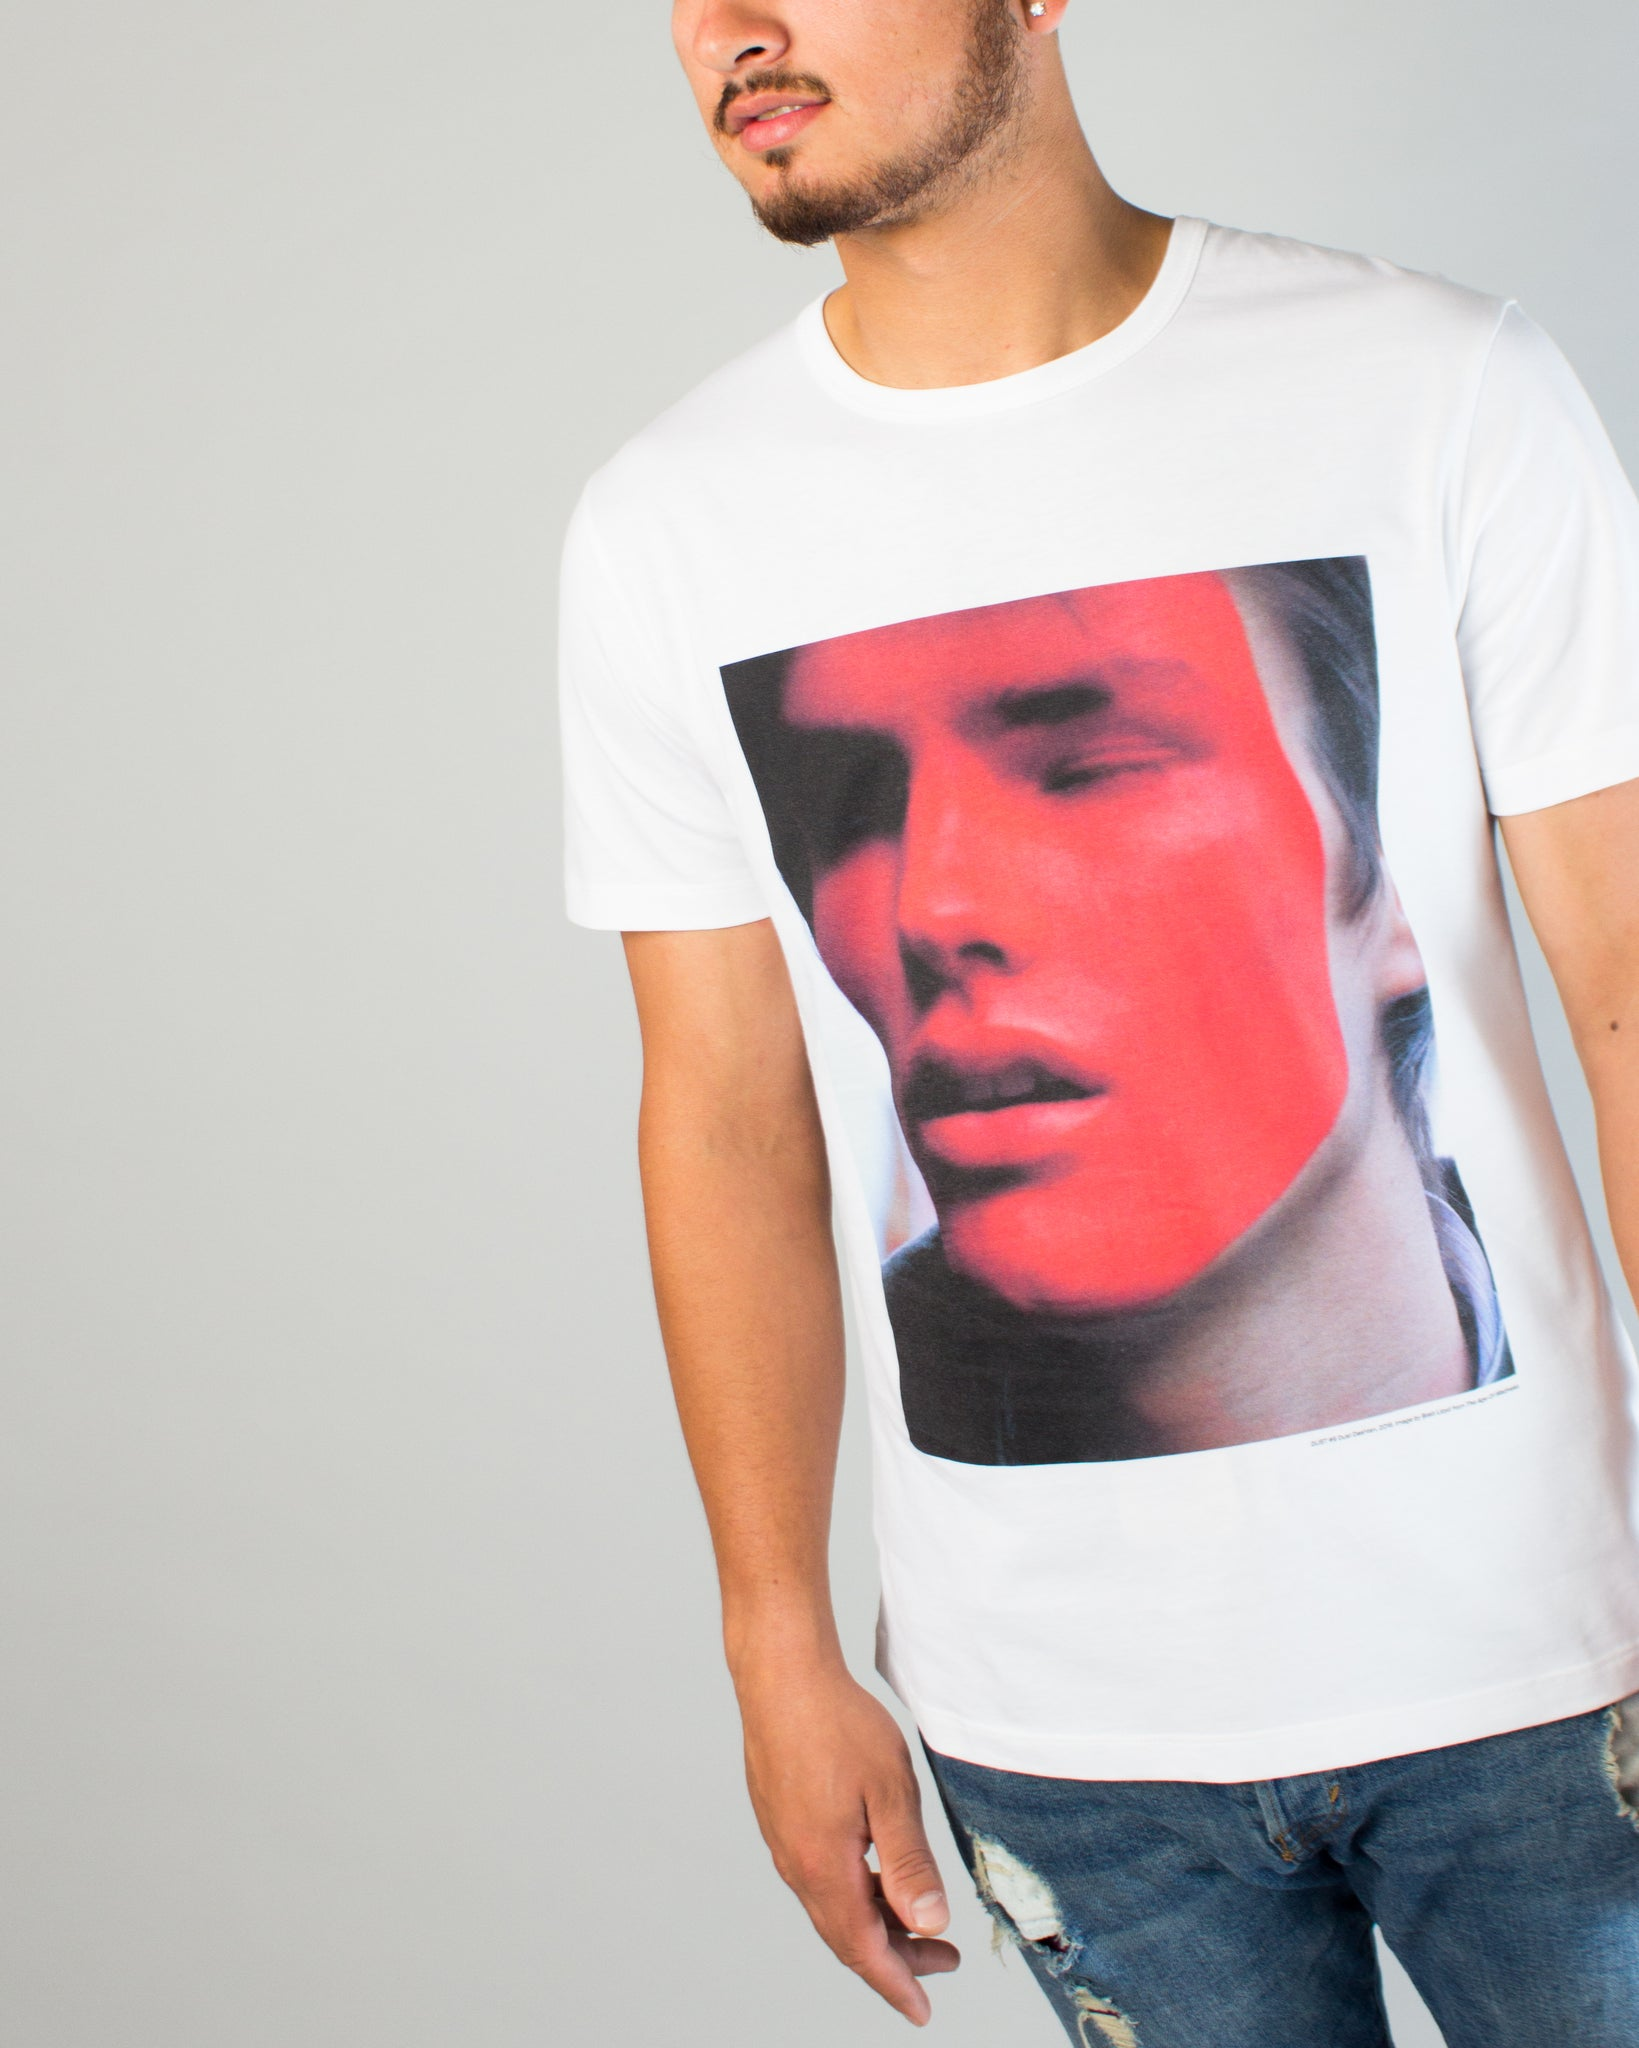 Brett Tee White/Black